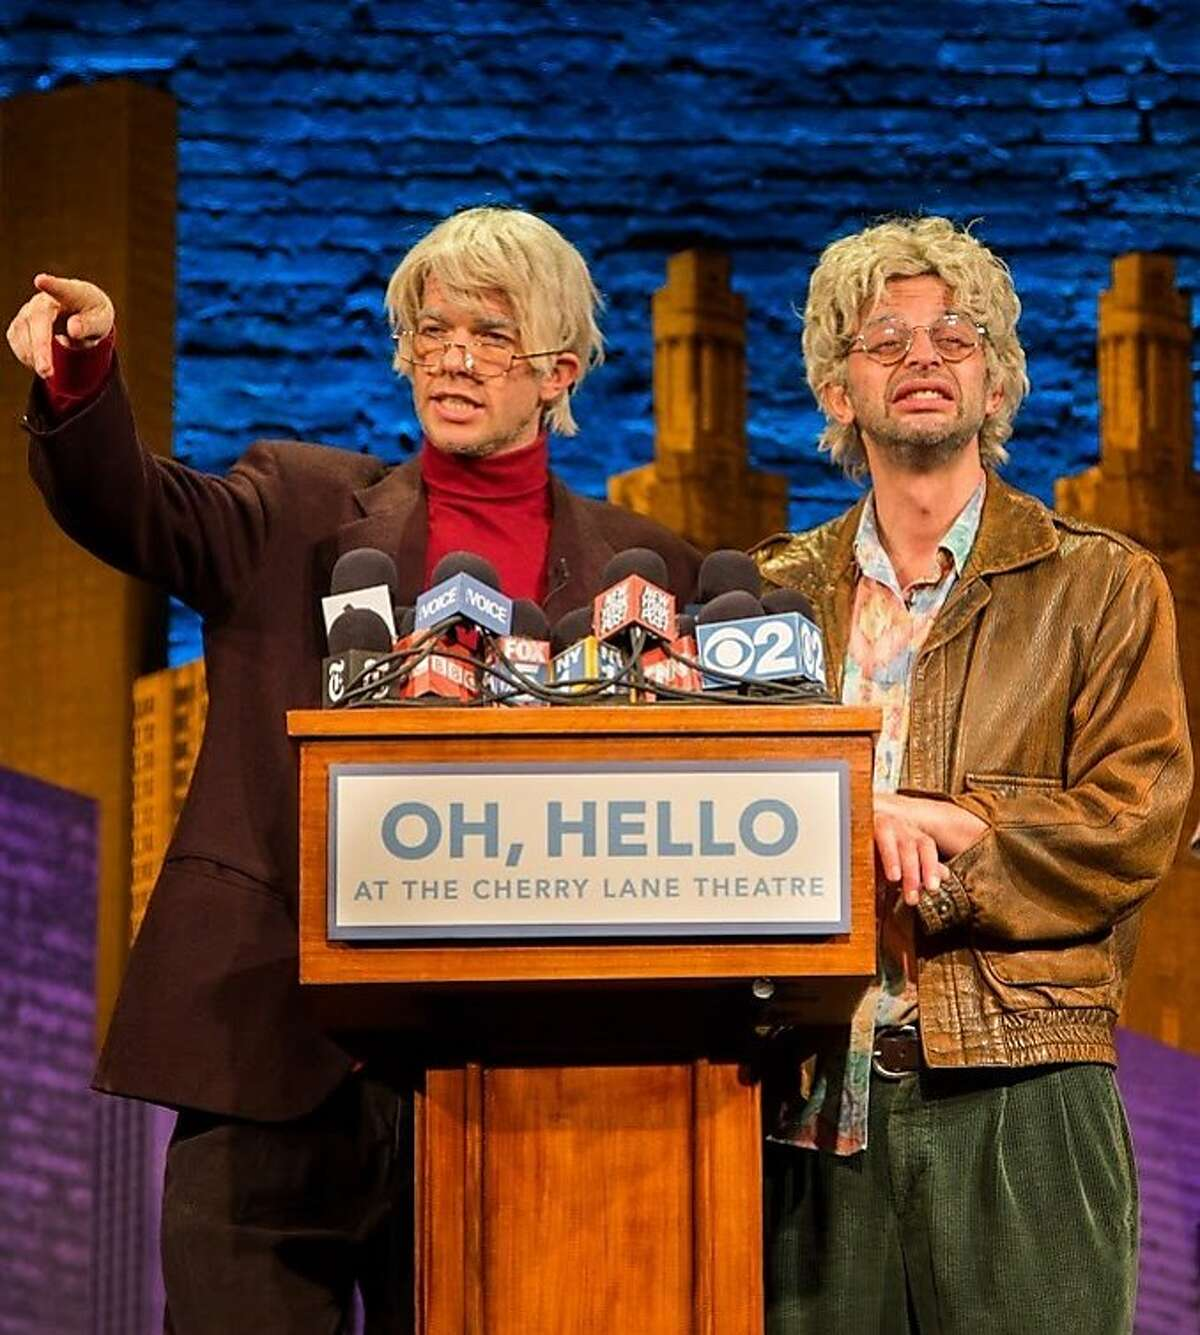 """Comedians John Mulaney and Nick Kroll in character for their show, """"Oh Hello."""" credit: Christian Frarey)"""